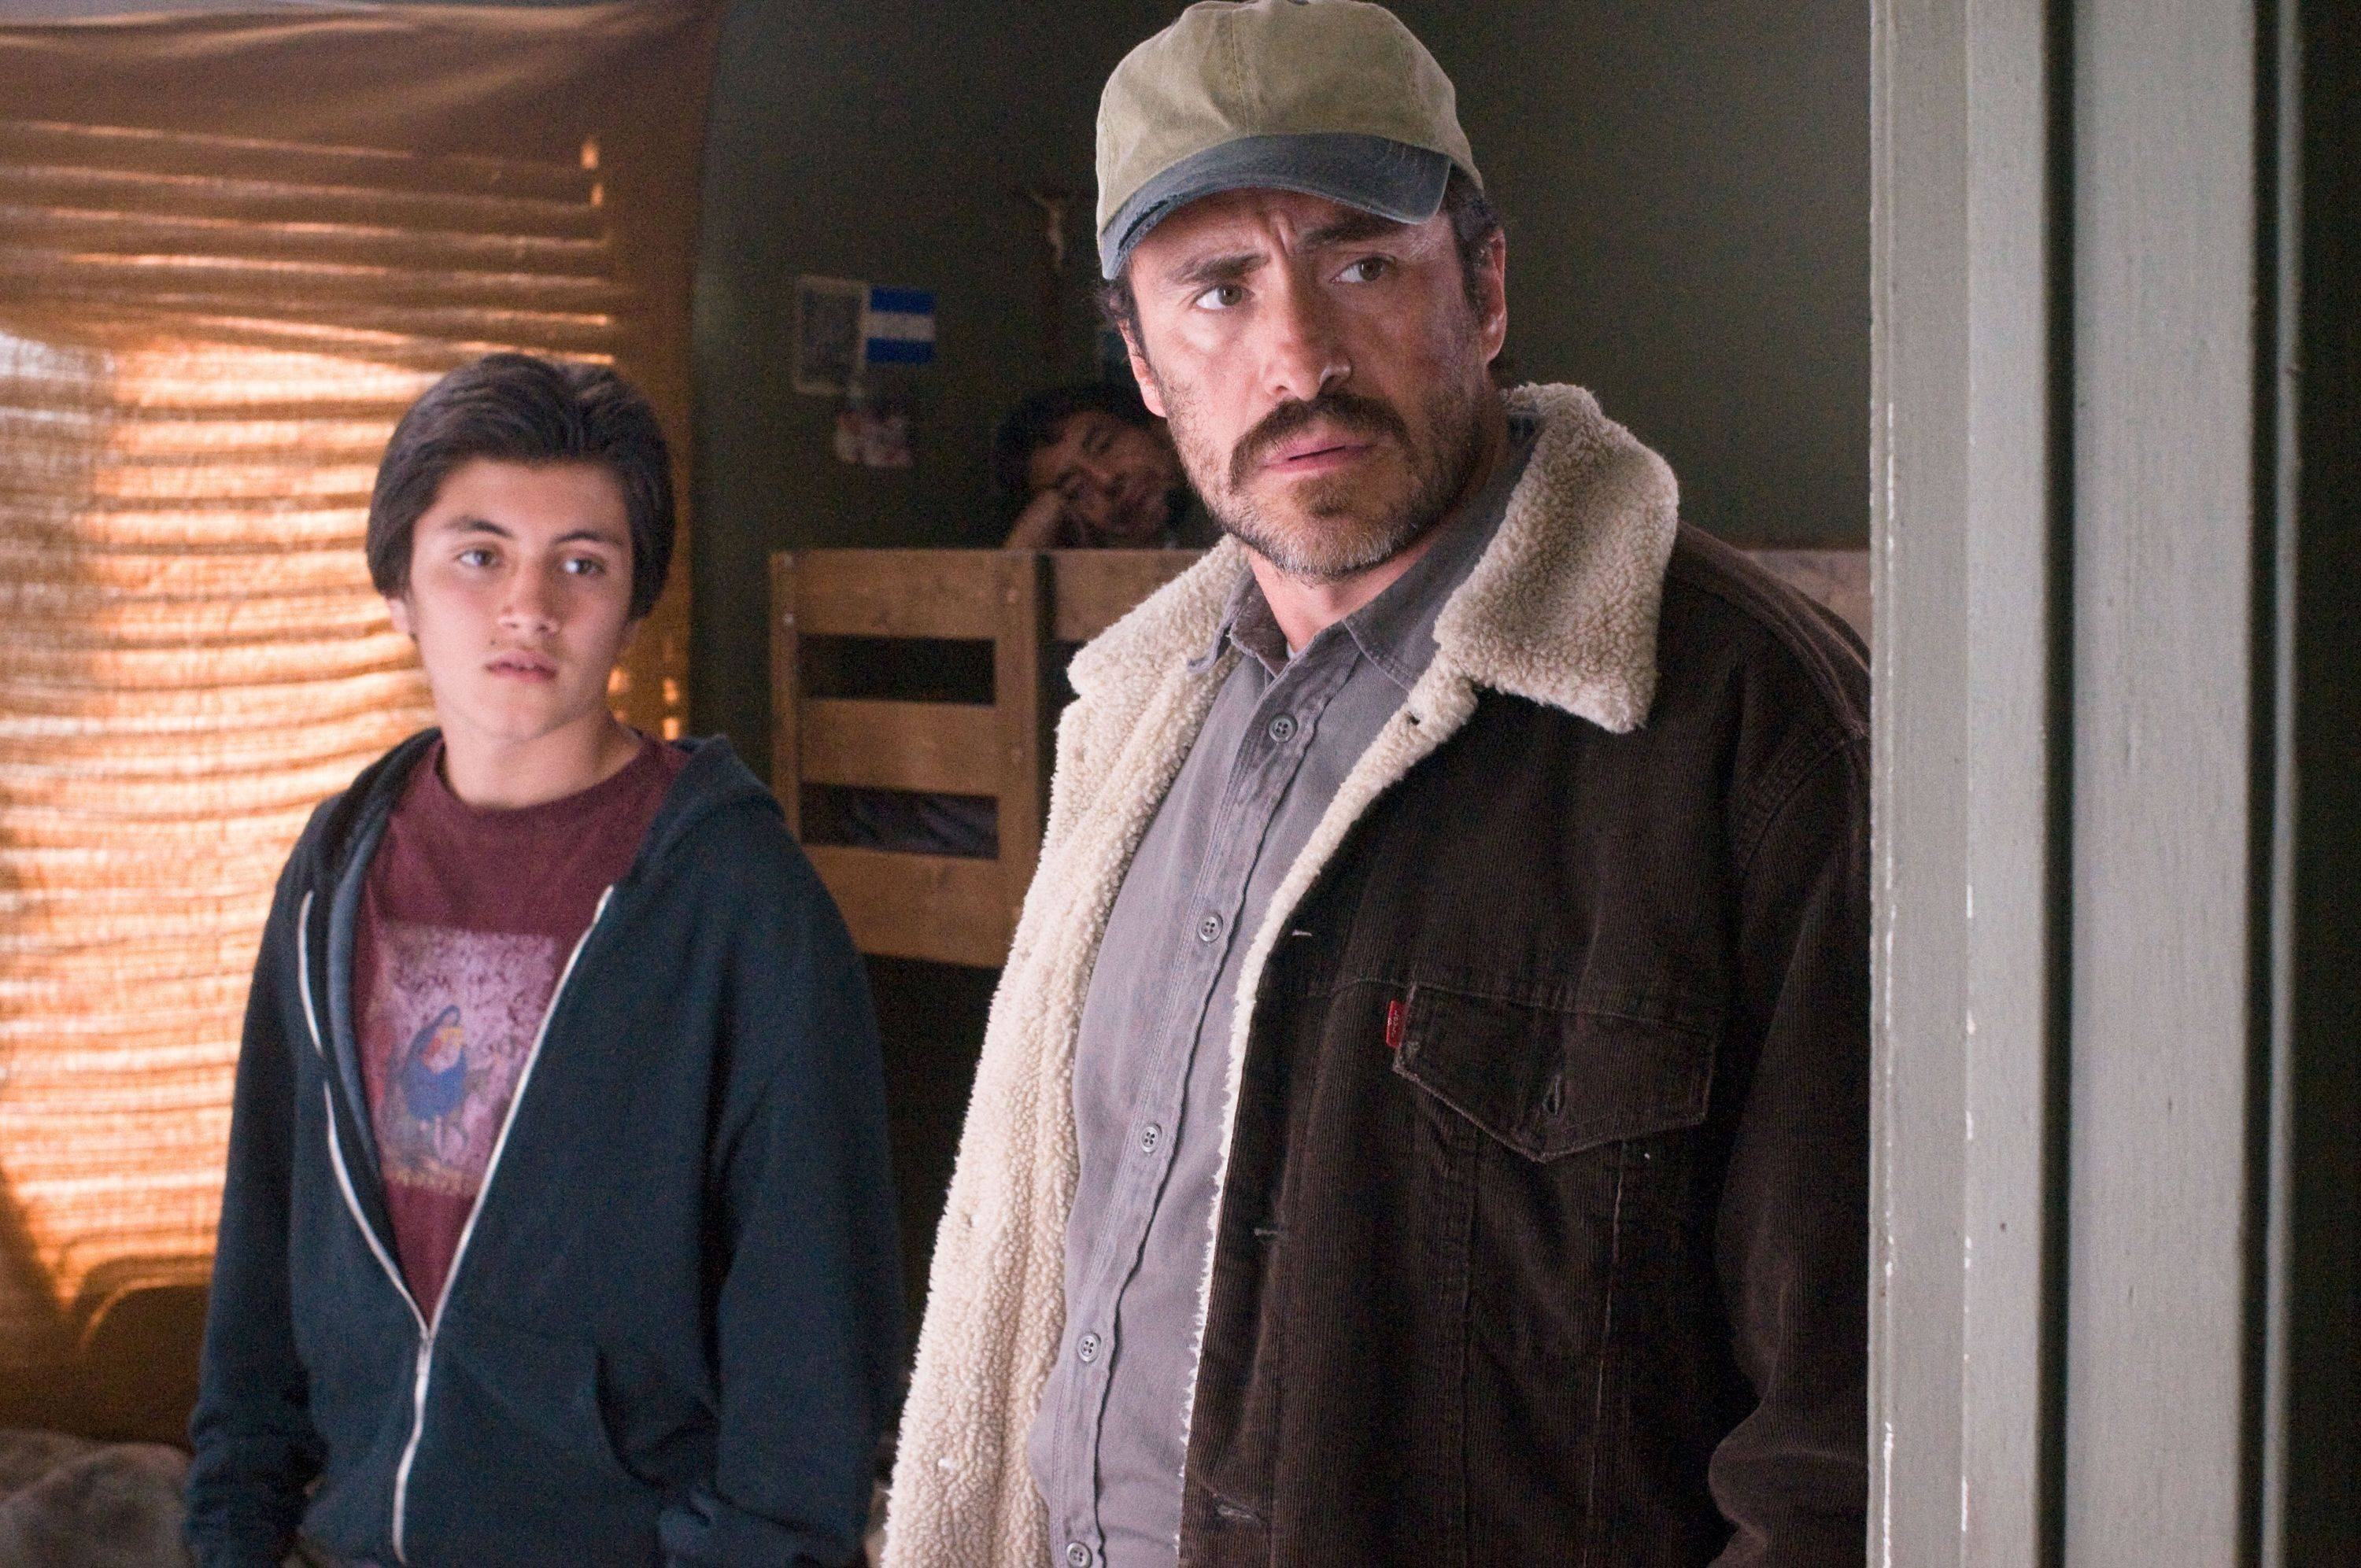 "In this file film publicity image released by Summit Entertainment, Jose Julian, left, and Demian Bichir, are shown in a scene from ""A Better Life."" Bichir was nominated Tuesday, Jan. 24, 2012 for an Academy Award for best actor for his role in the film."